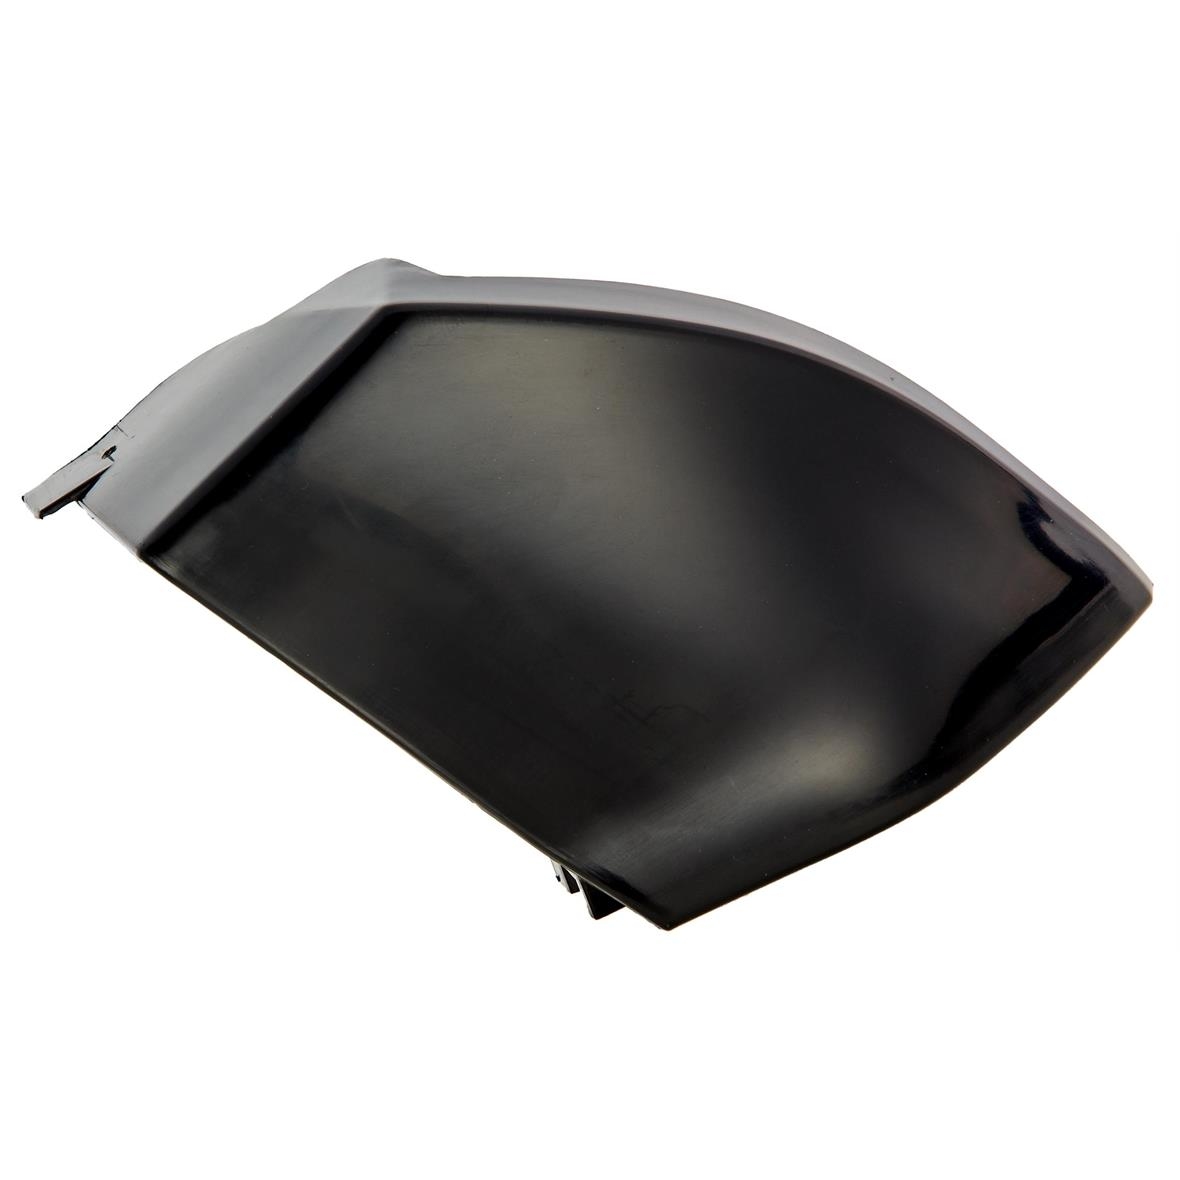 Product Image for 'End Piece Underbody PIAGGIO lower, rightTitle'